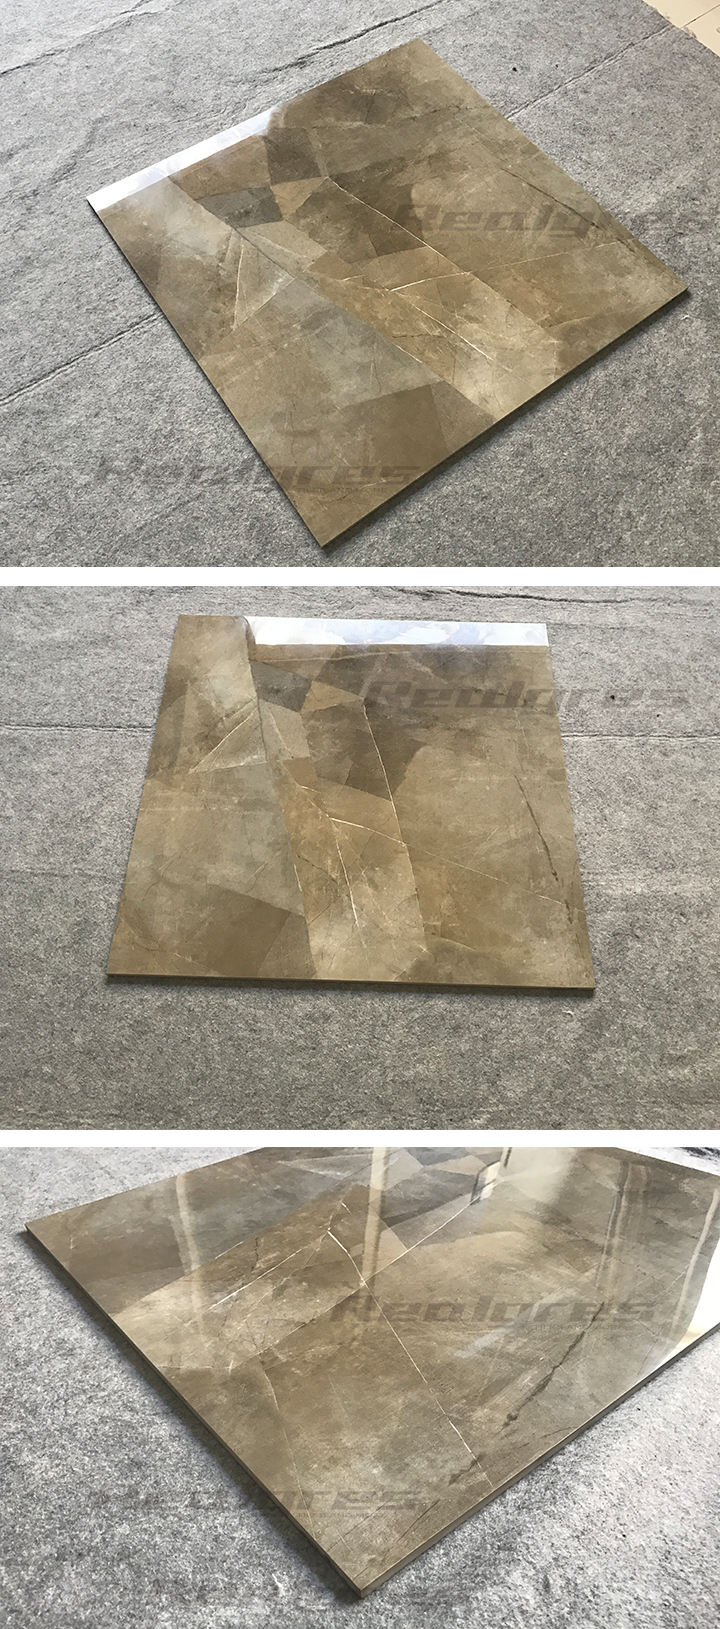 Mirror polished porcelain marble floor tile lowes polished marble mirror polished porcelain marble floor tile lowes polished marble tile prices in pakistan dailygadgetfo Images